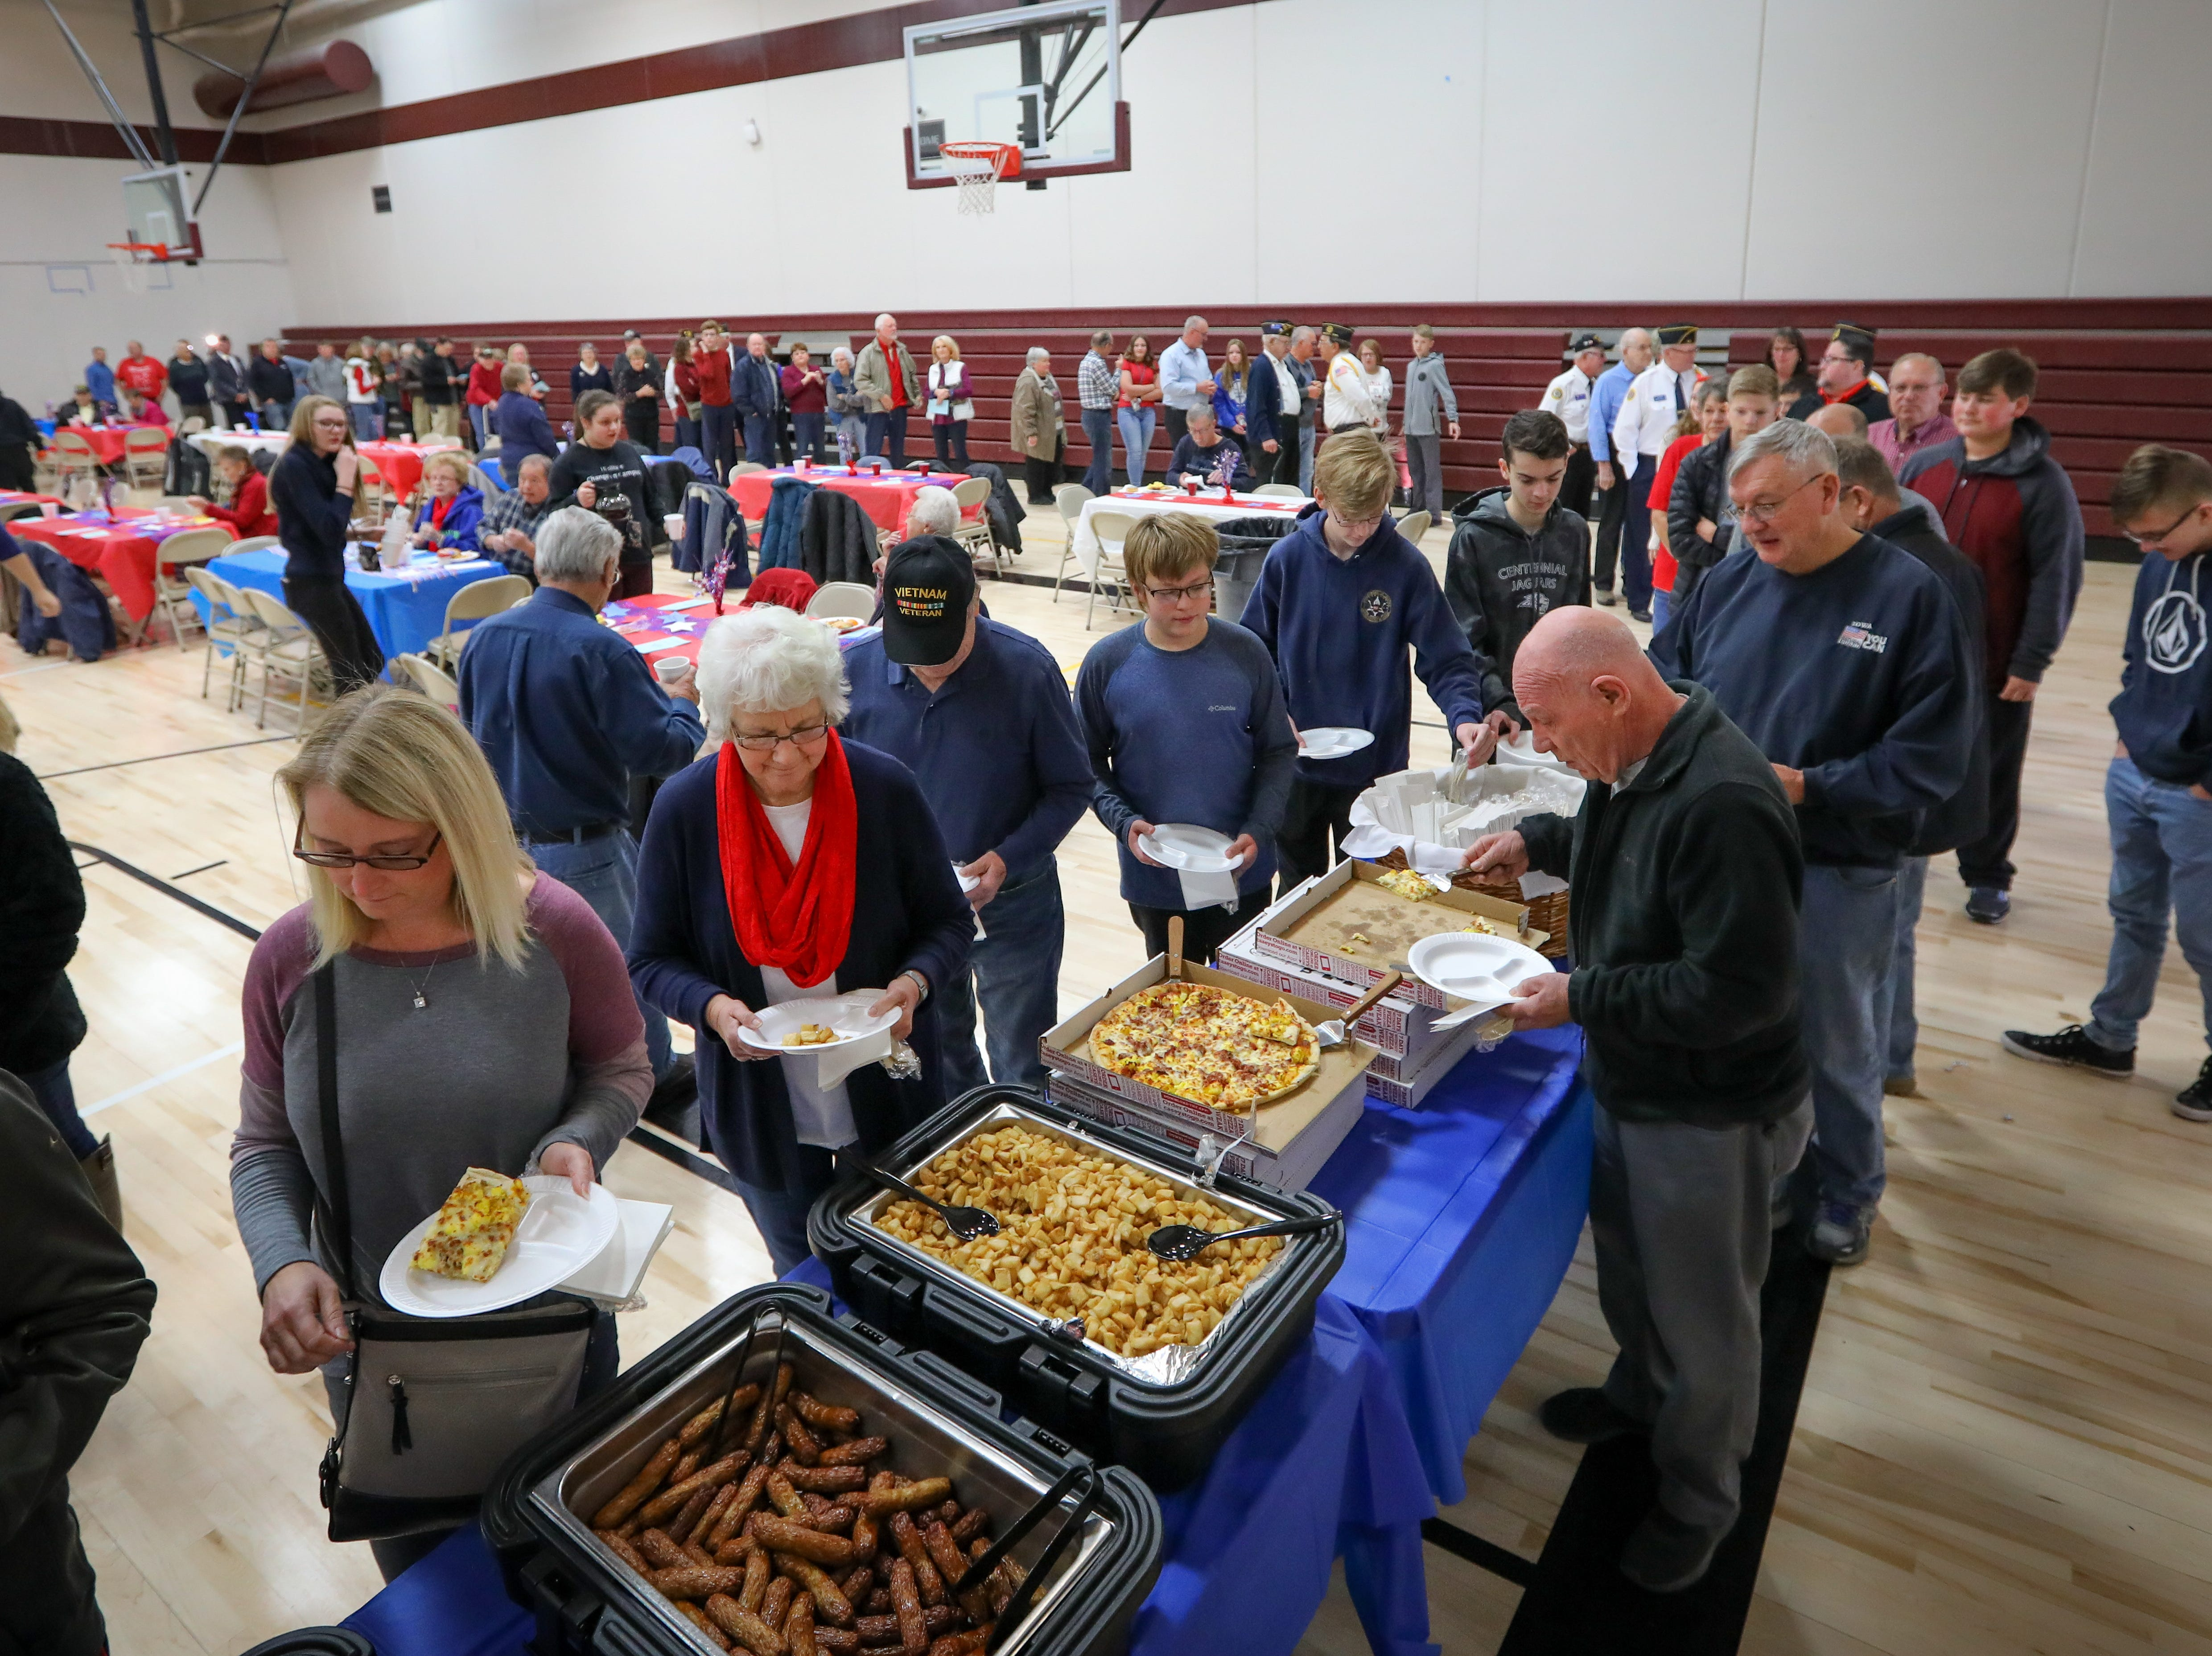 A general view of Veterans Day Breakfast at Northview Middle School on Wednesday, Nov. 14, 2018 in Ankeny, Iowa. Middle school students hosted the veterans to share their gratitude before an assembly.